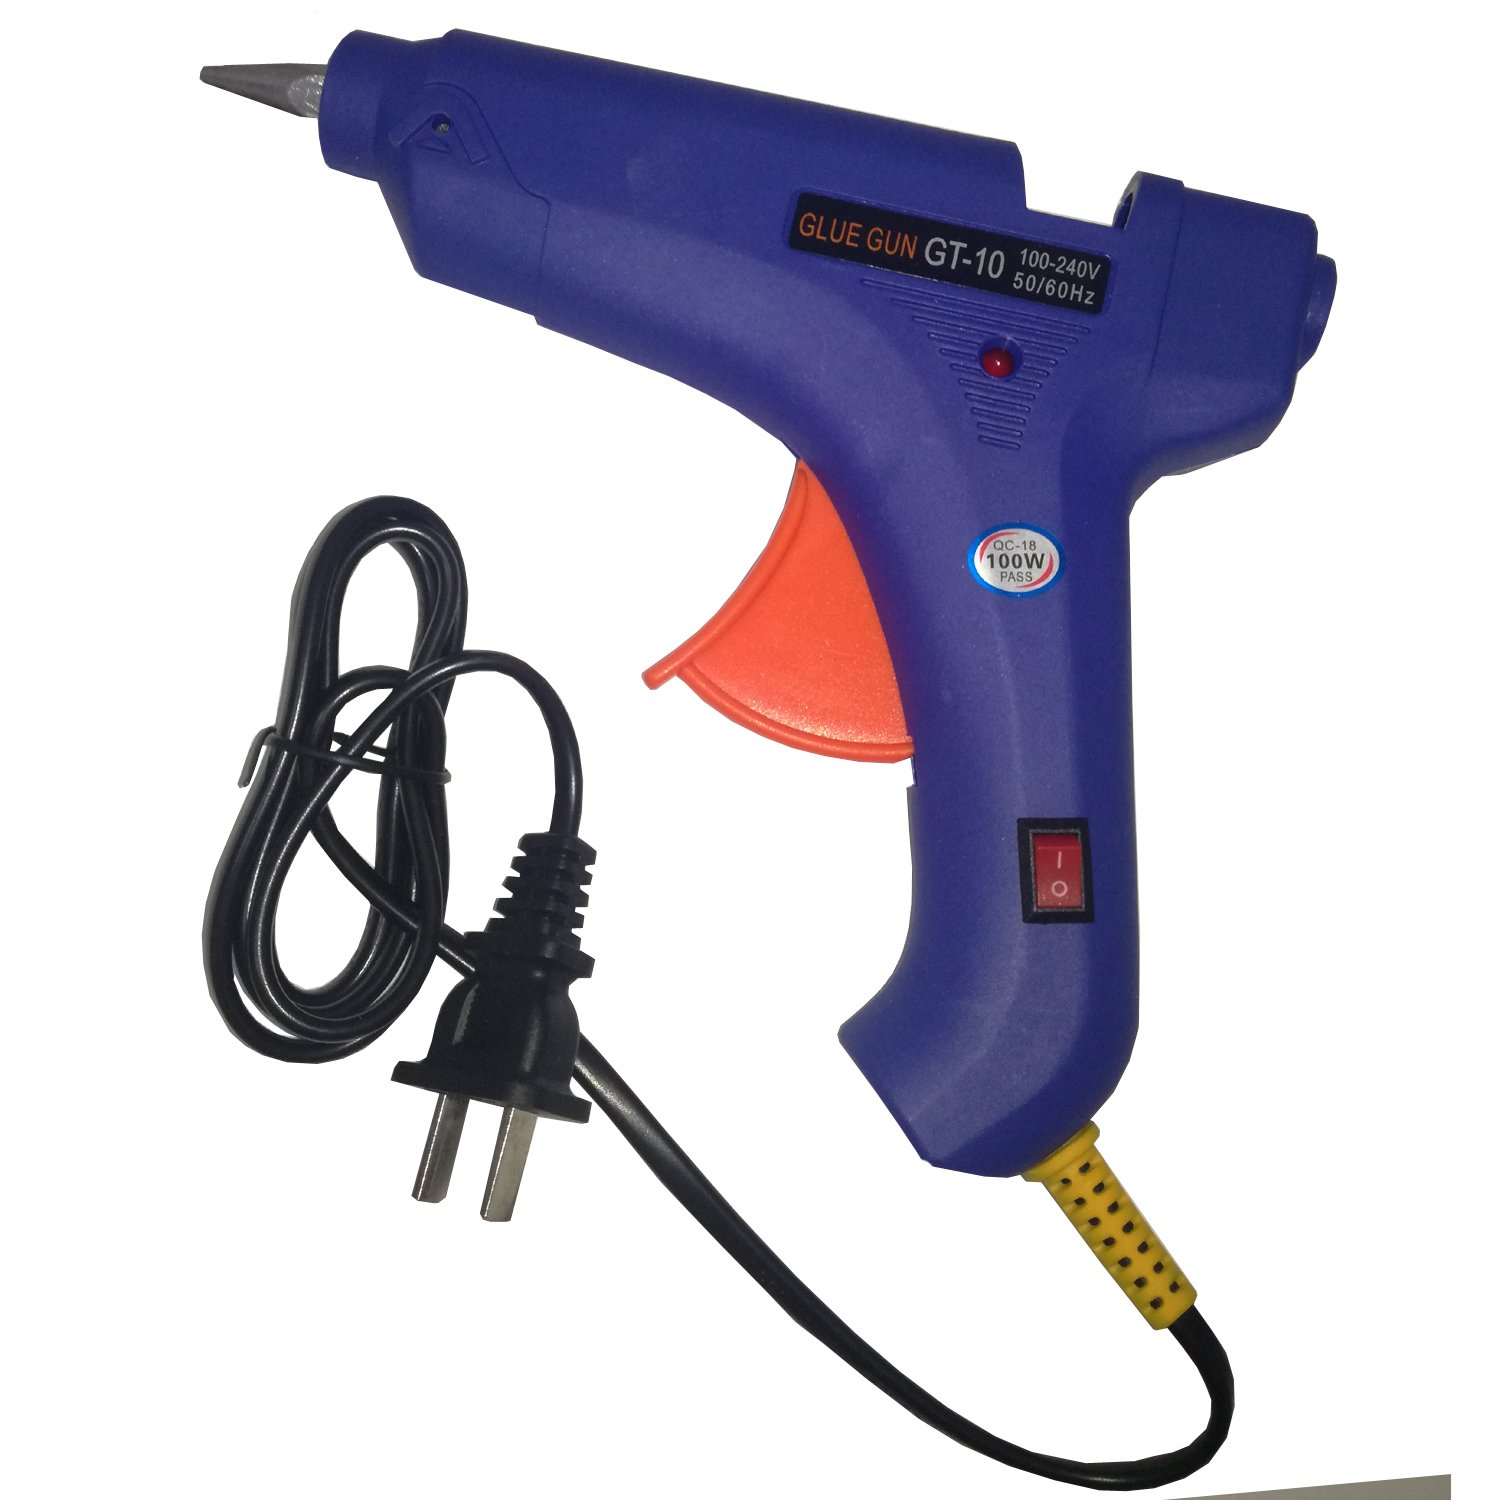 100W AC100-240V 11mm Stick High Temperature Heater Hot Melt Glue Gun Pistolas Silicona Caliente Pistolet Colle GT-10 CE CB